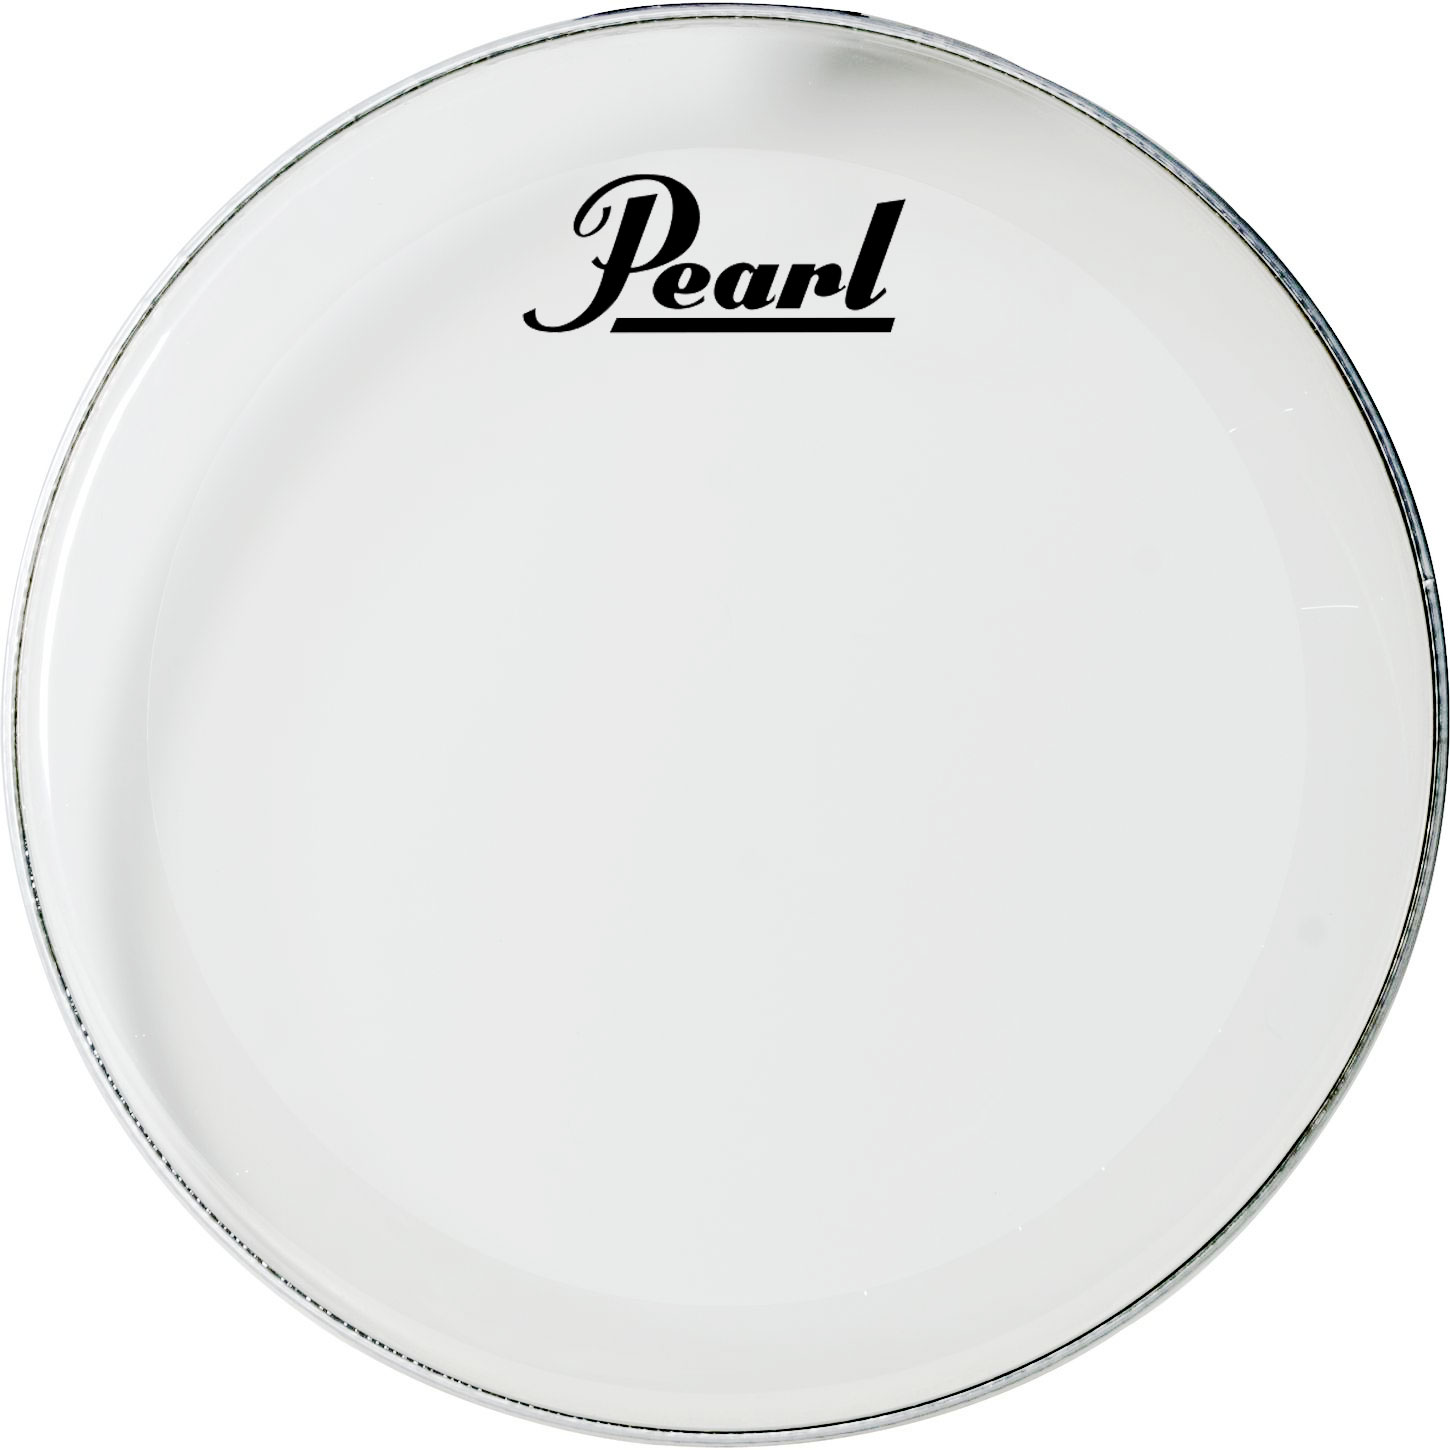 "Pearl 10"" Super Clear Tom Head"